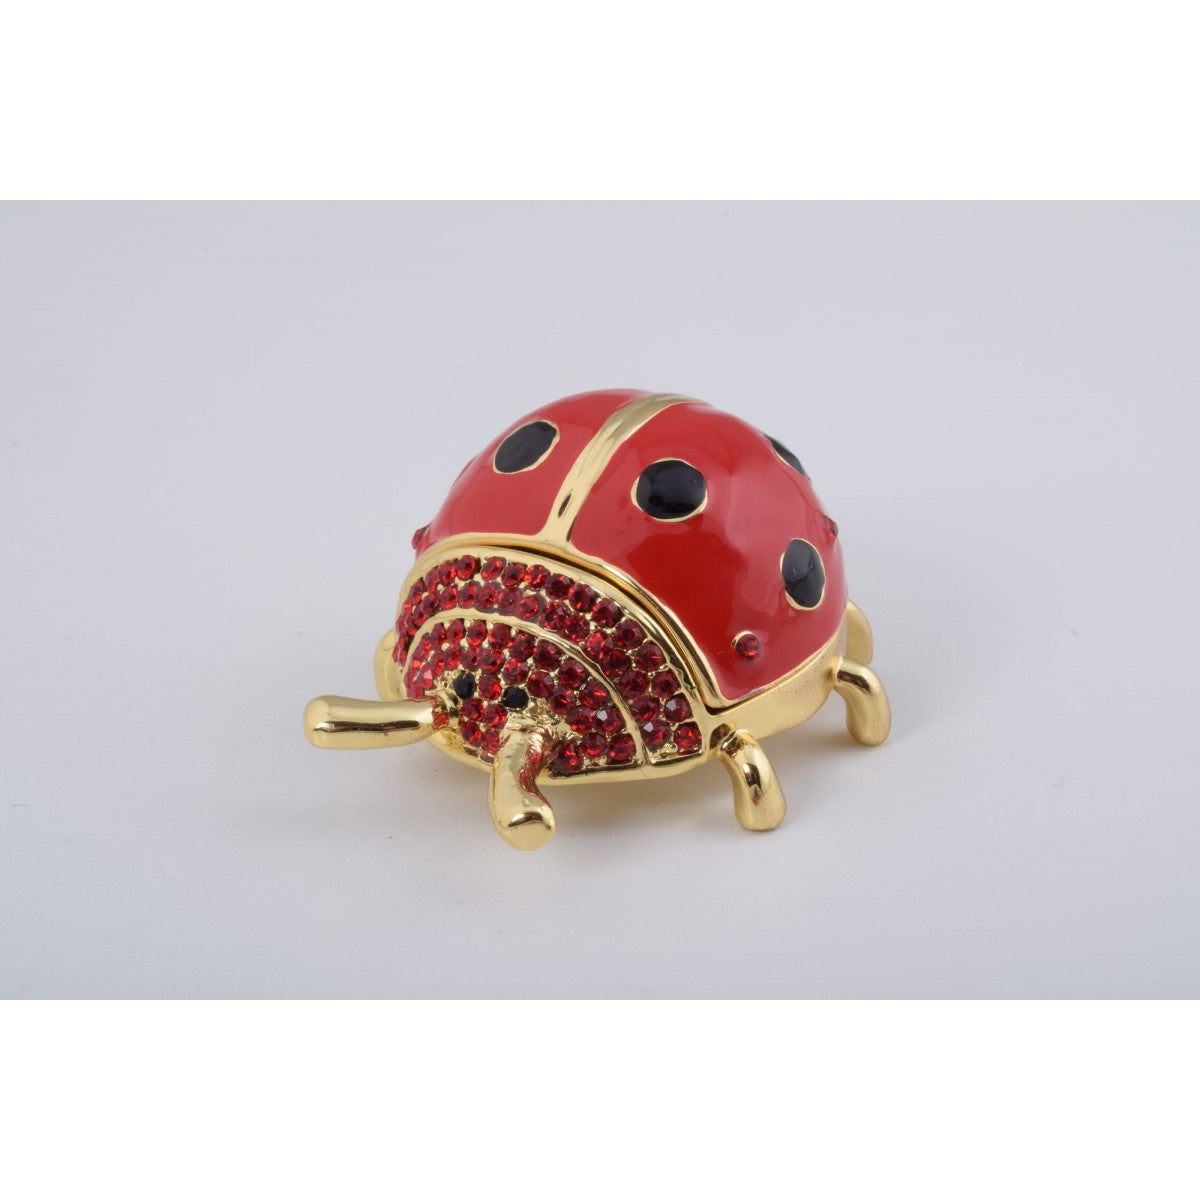 Red Ladybug Trinket Box by Keren Kopal